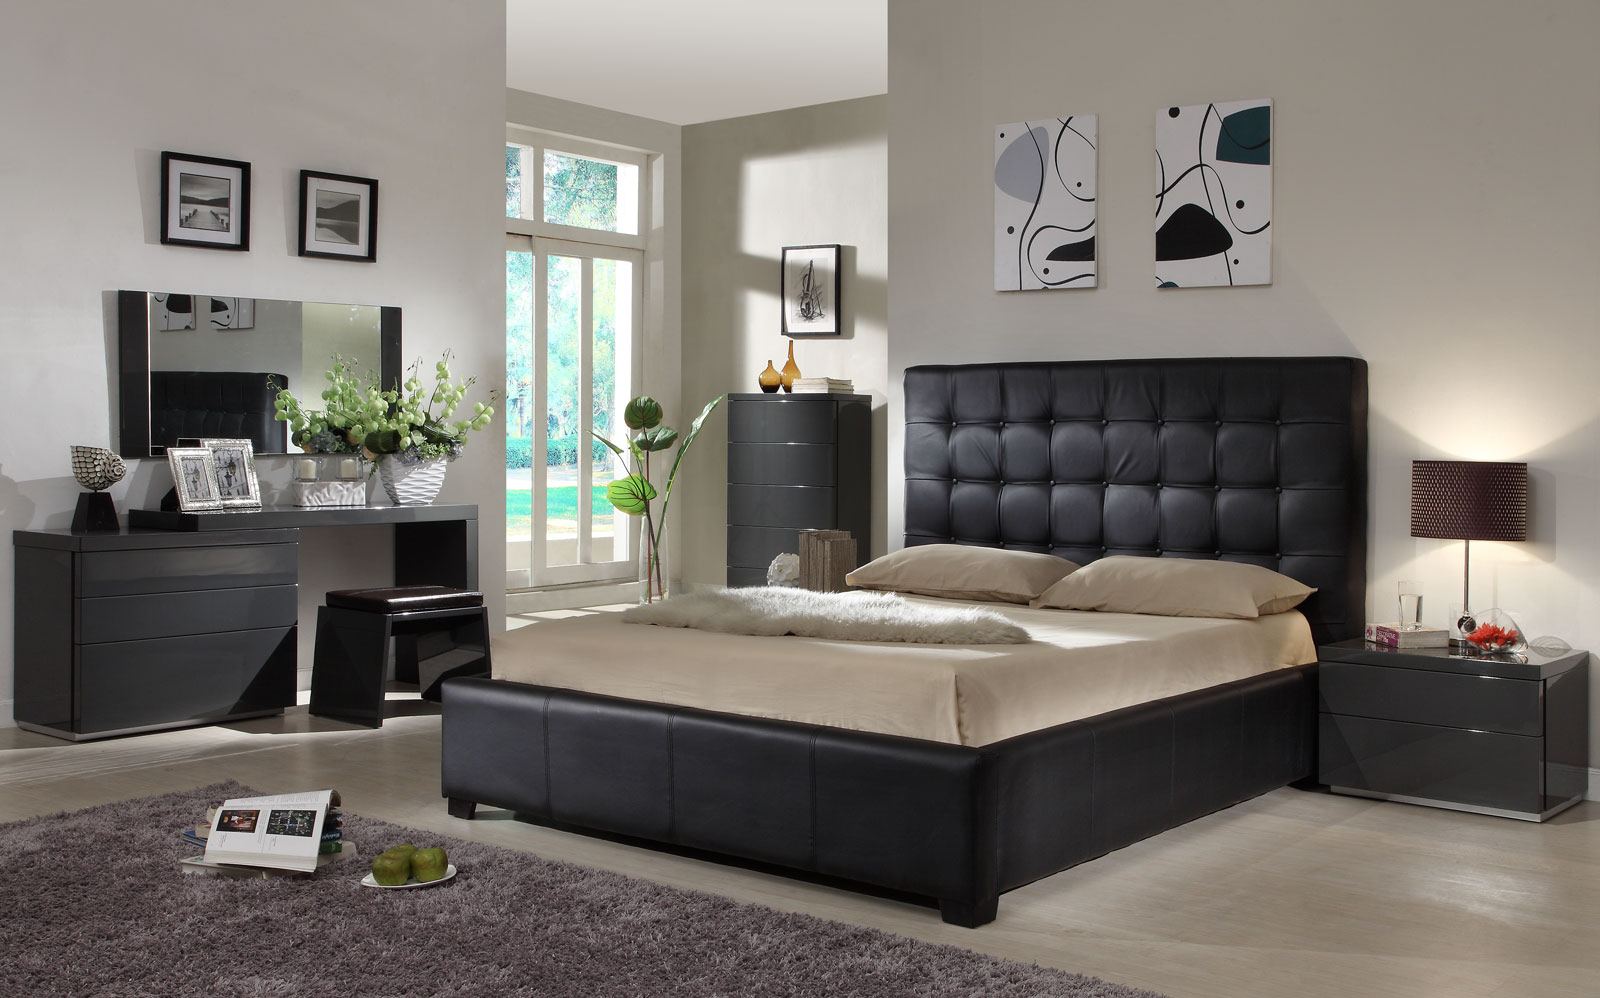 bedroom-ideas-black-leather-bed56